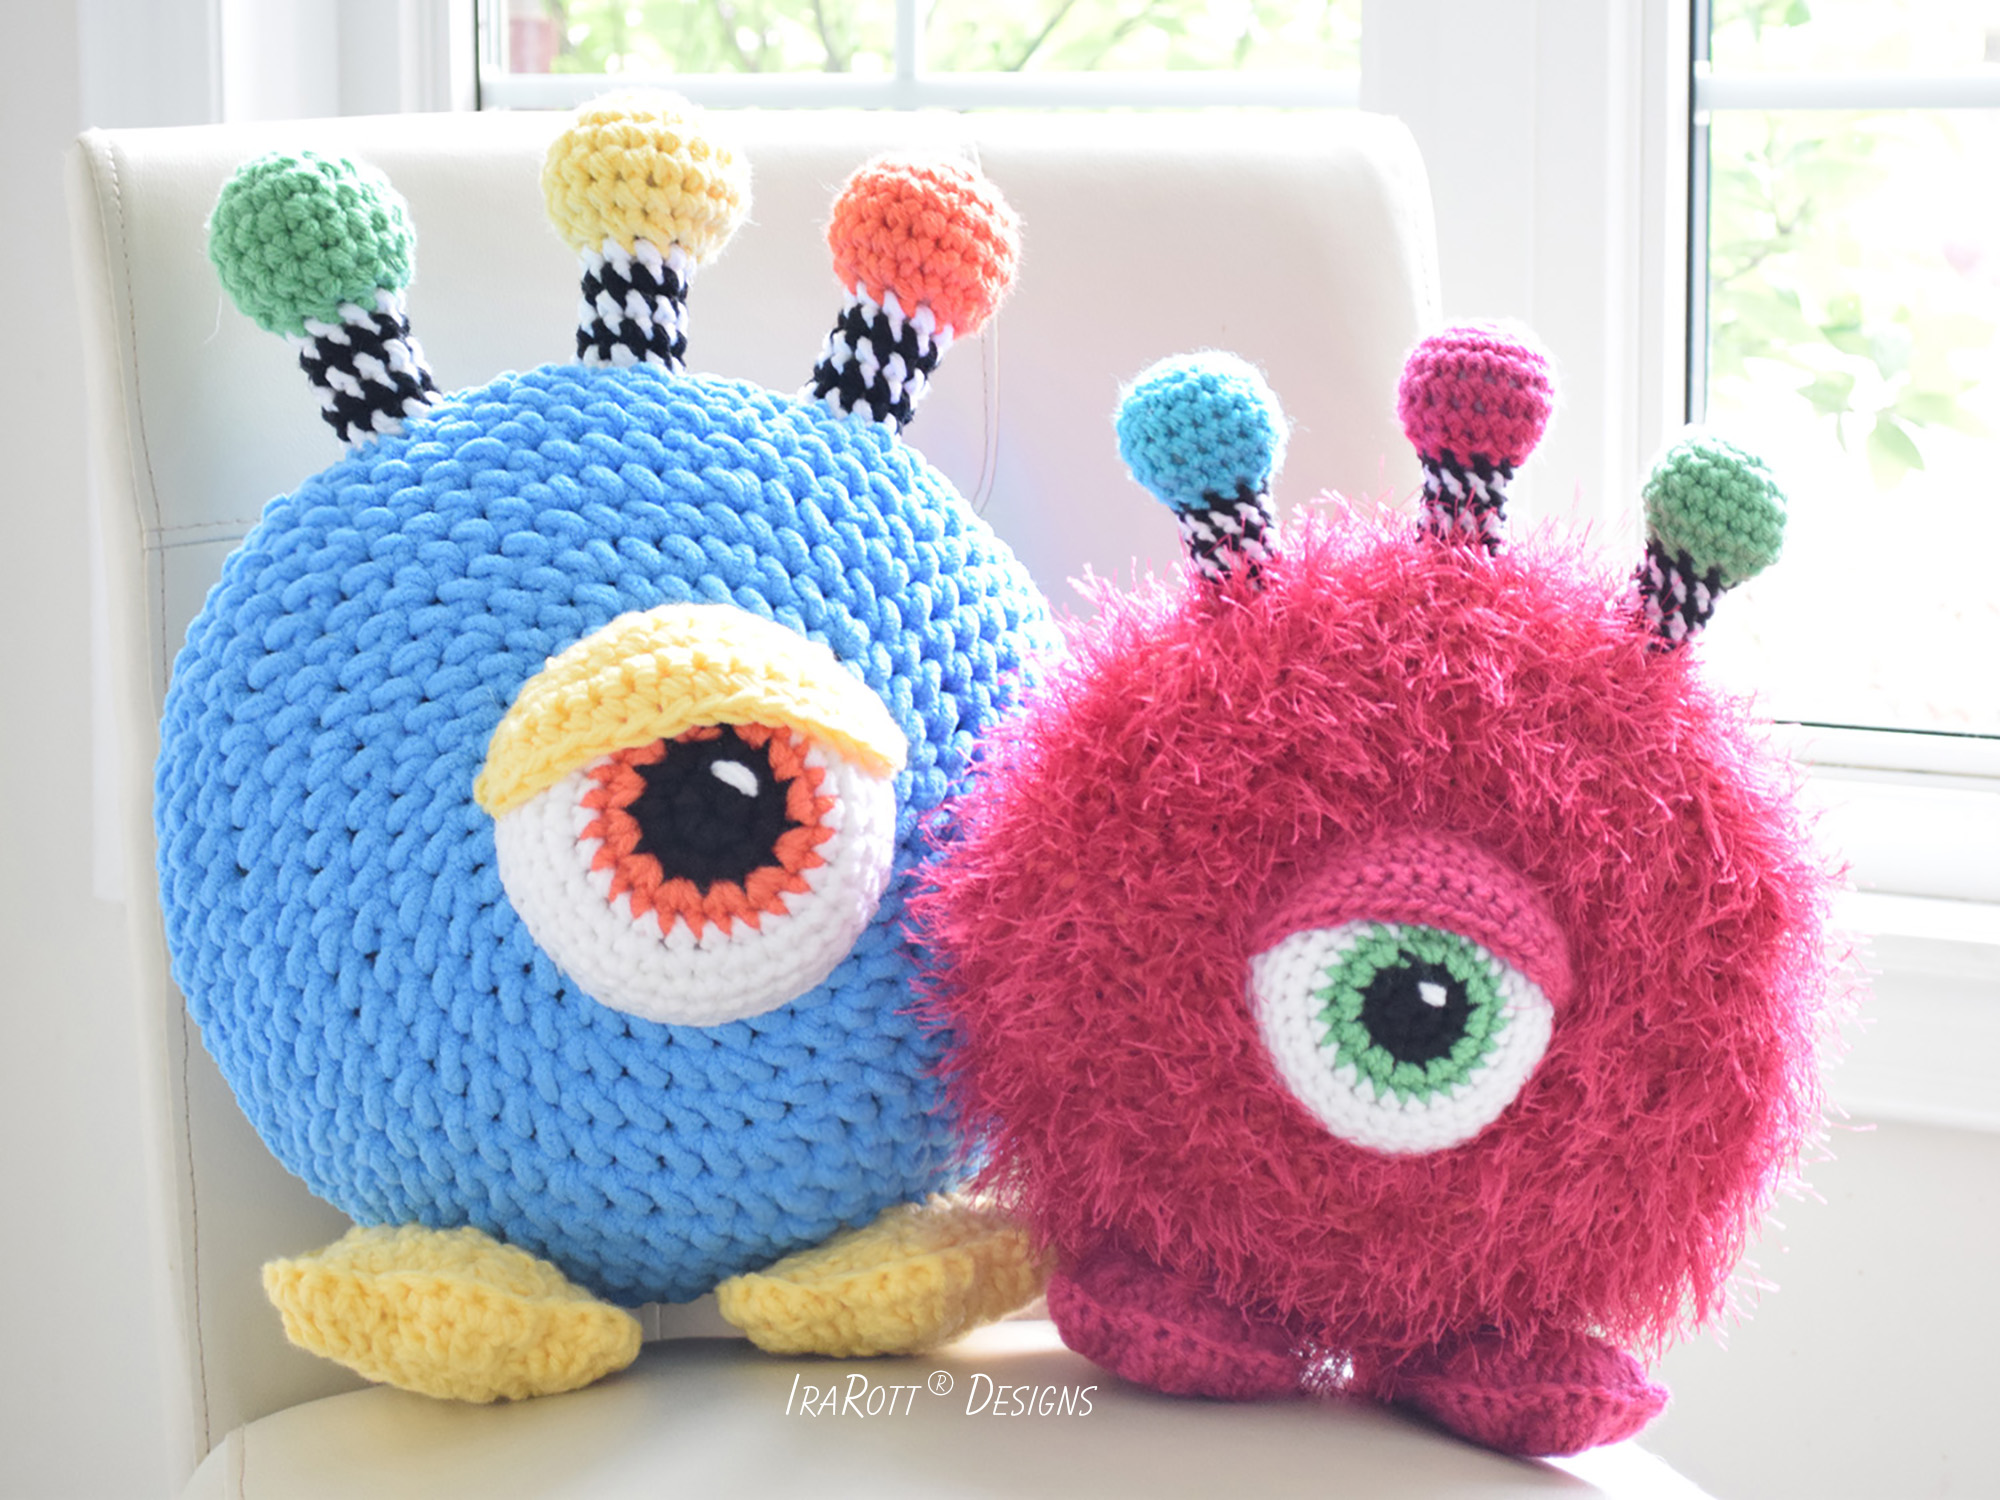 Neon The Gumball Monster Toy Pillow PDF Crochet Pattern With Instant Download by IraRott